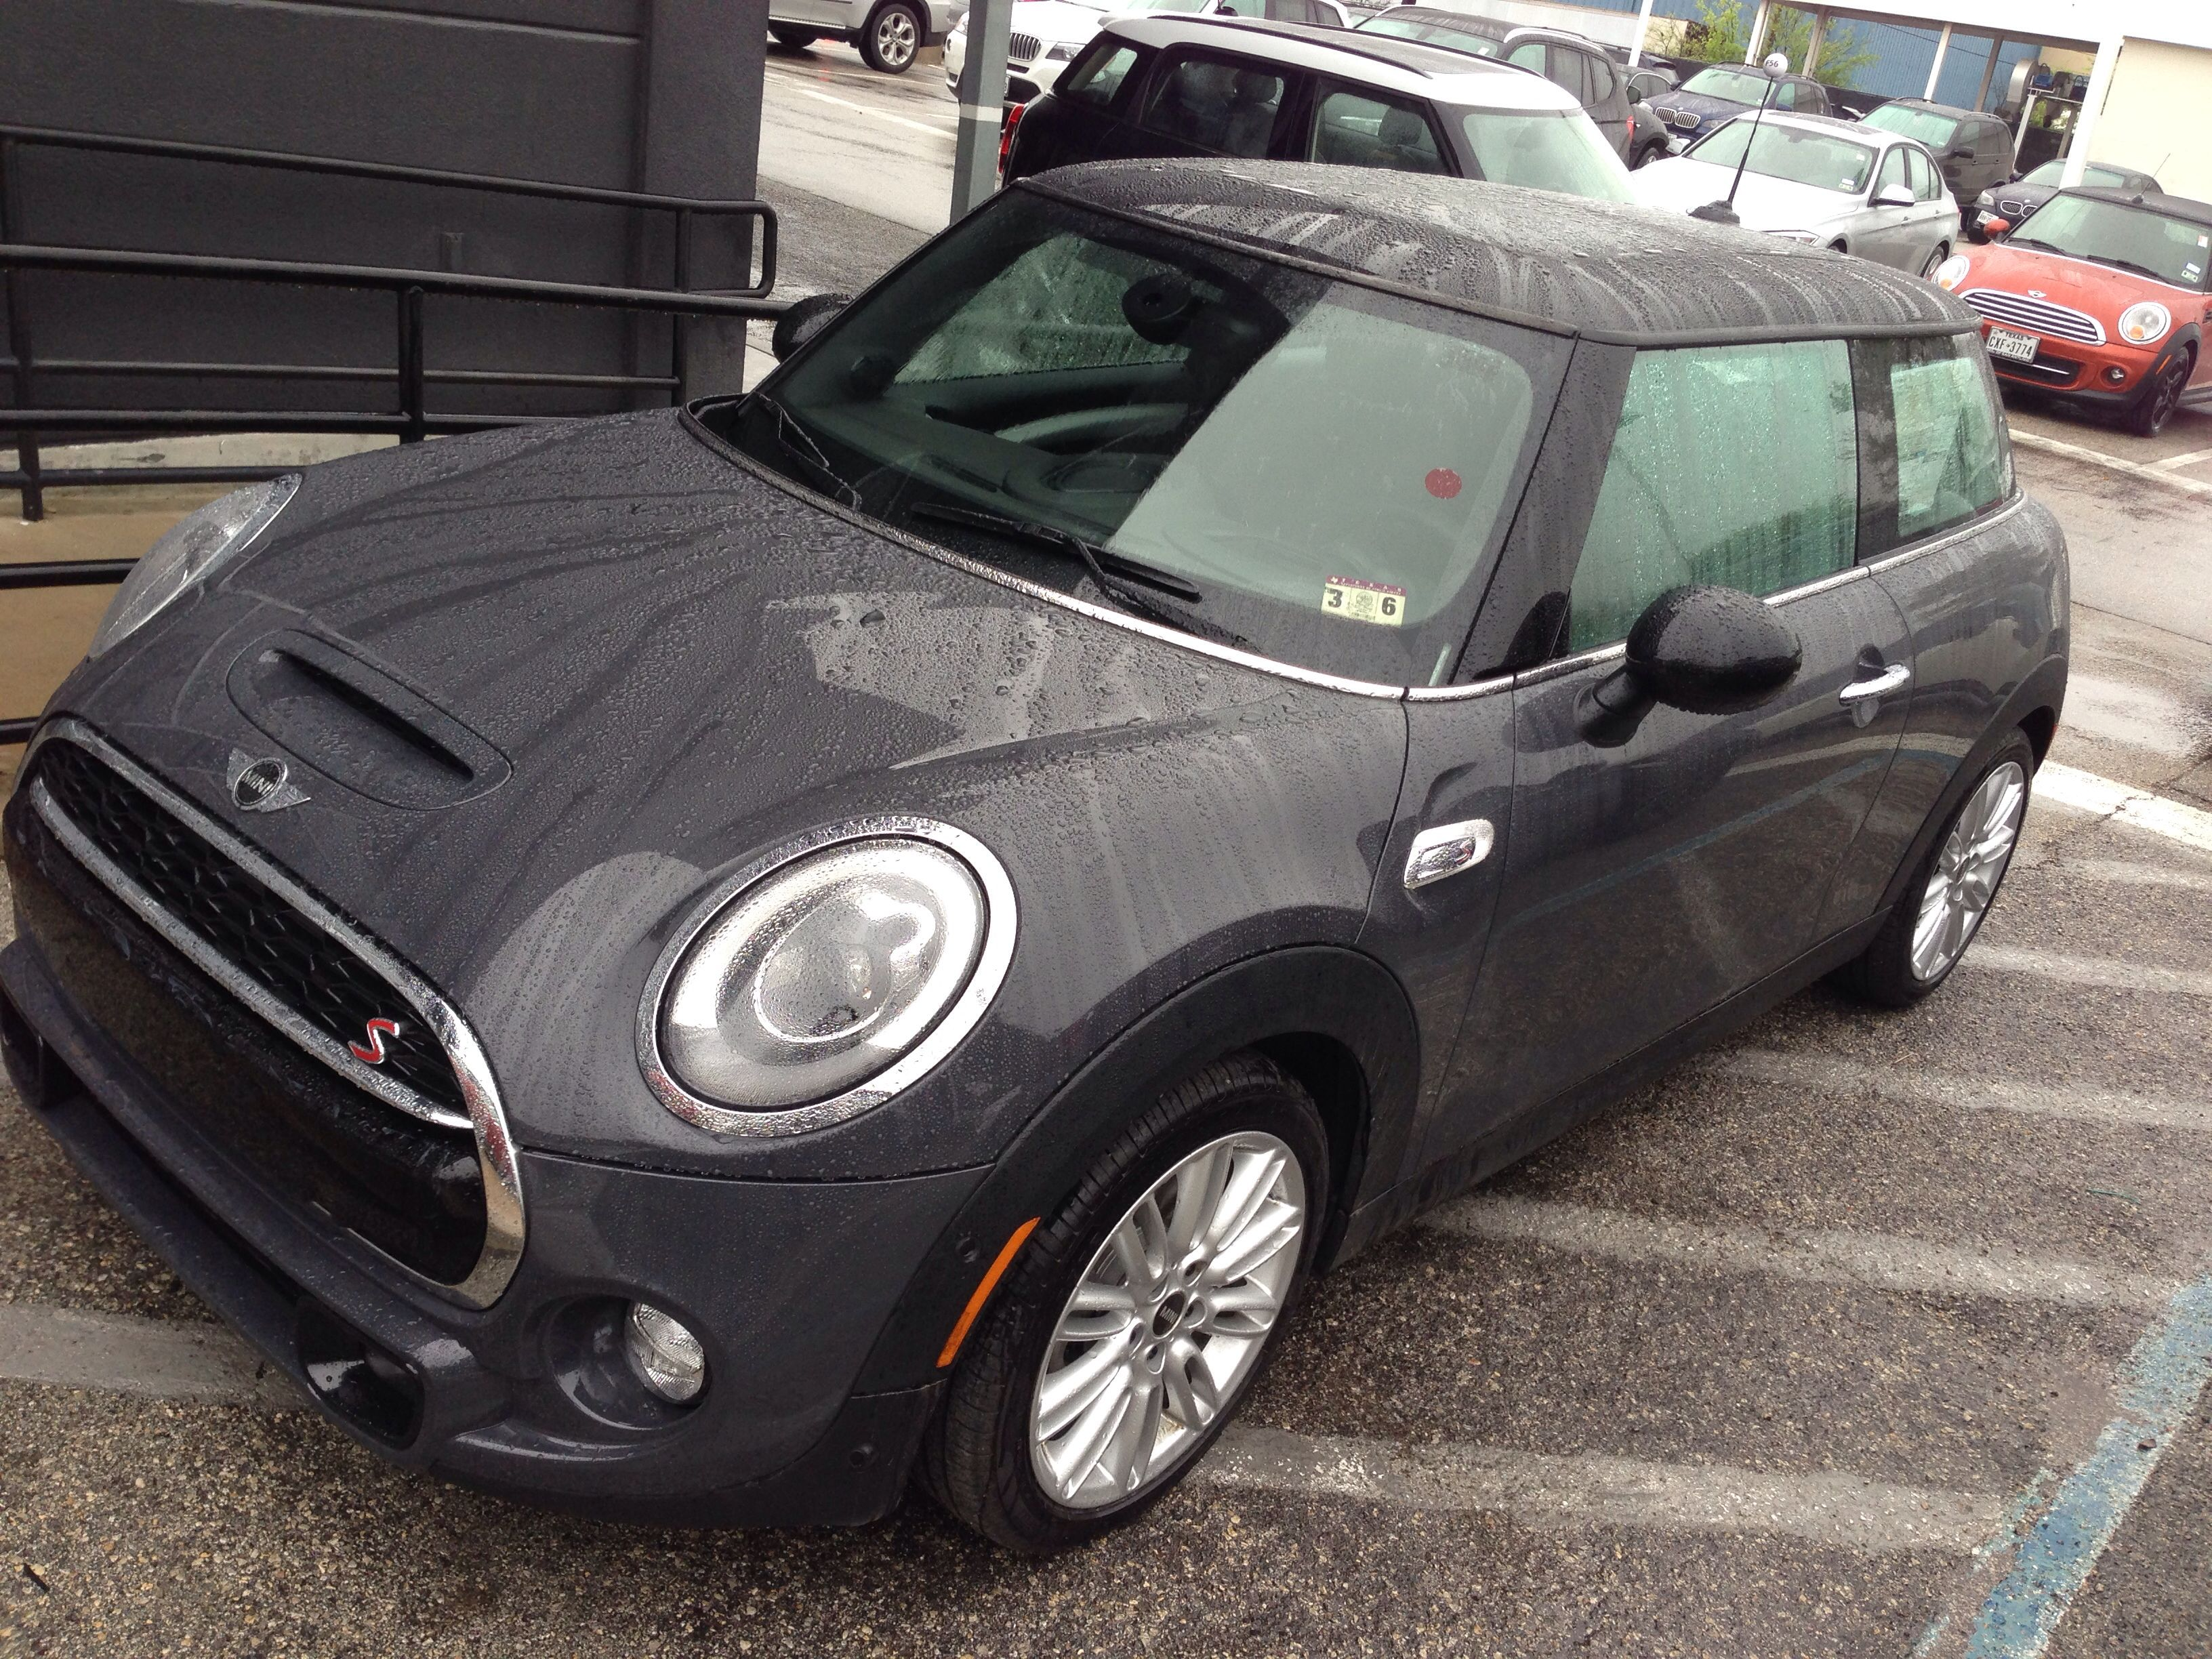 Thunder Grey Metallic Mini Cooper S Ht Just Got In Come See It At